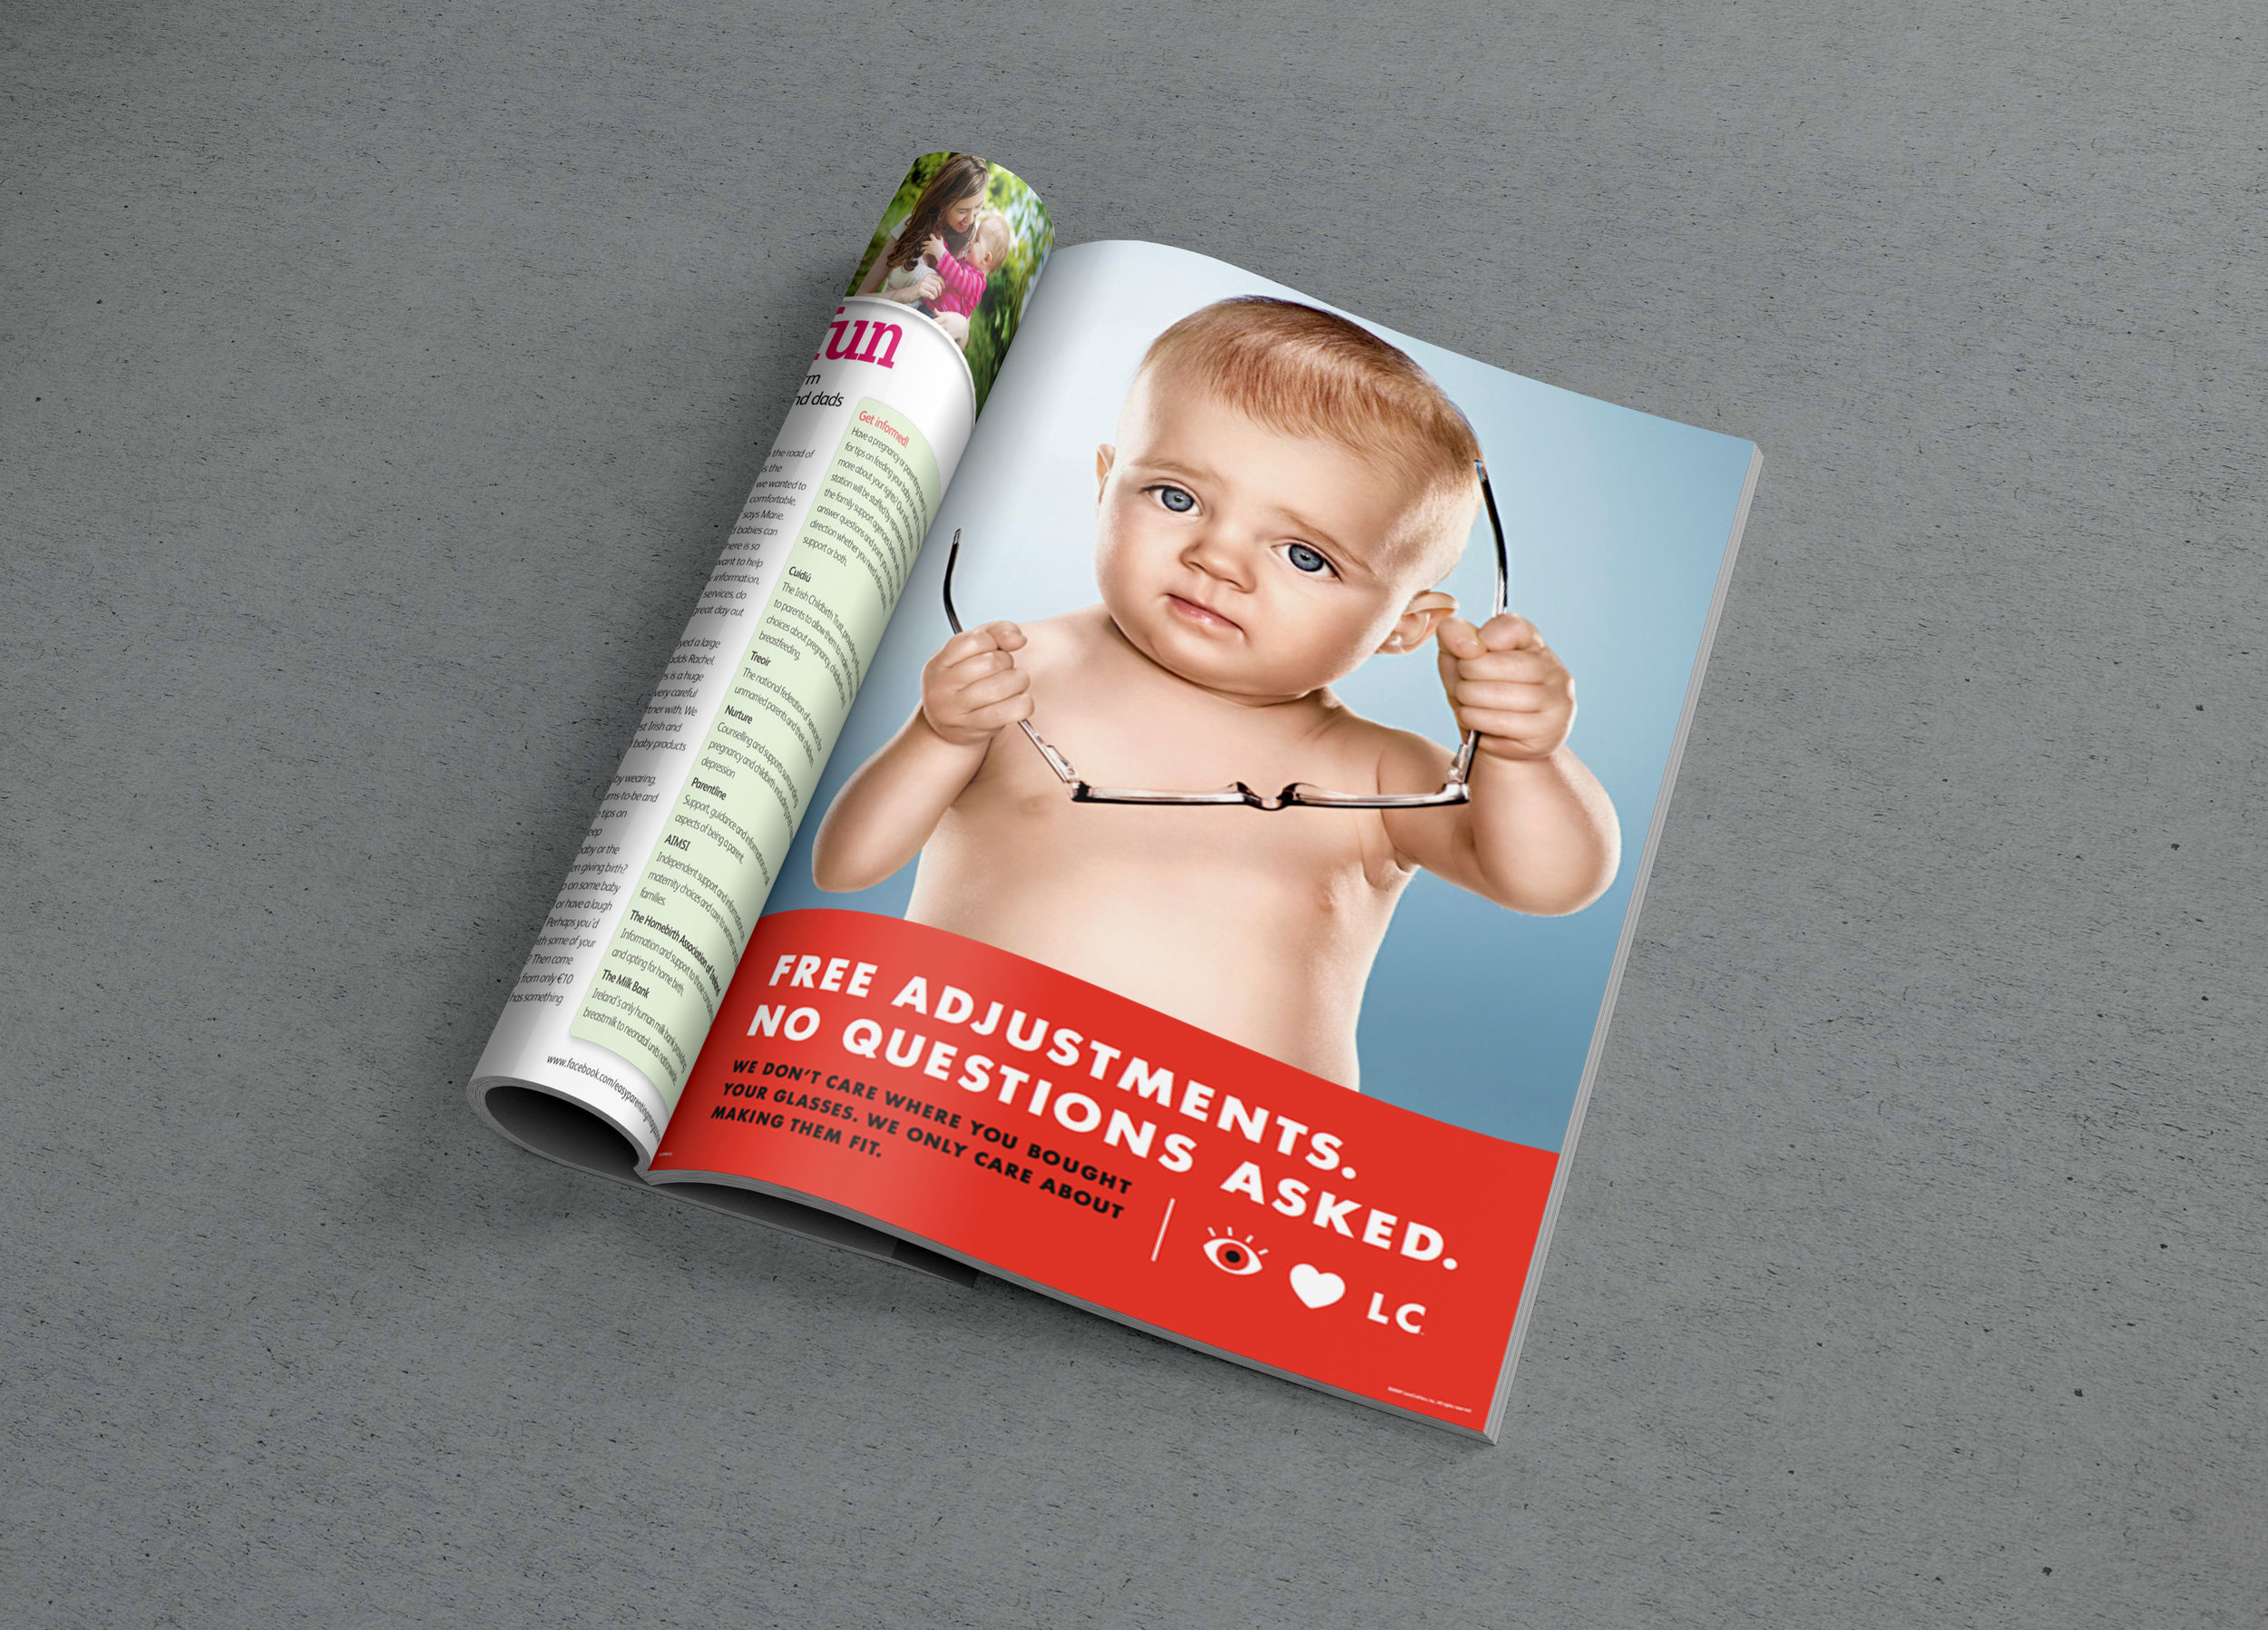 LensCrafters-LC-Magazine-Baby-Free-Adjustments